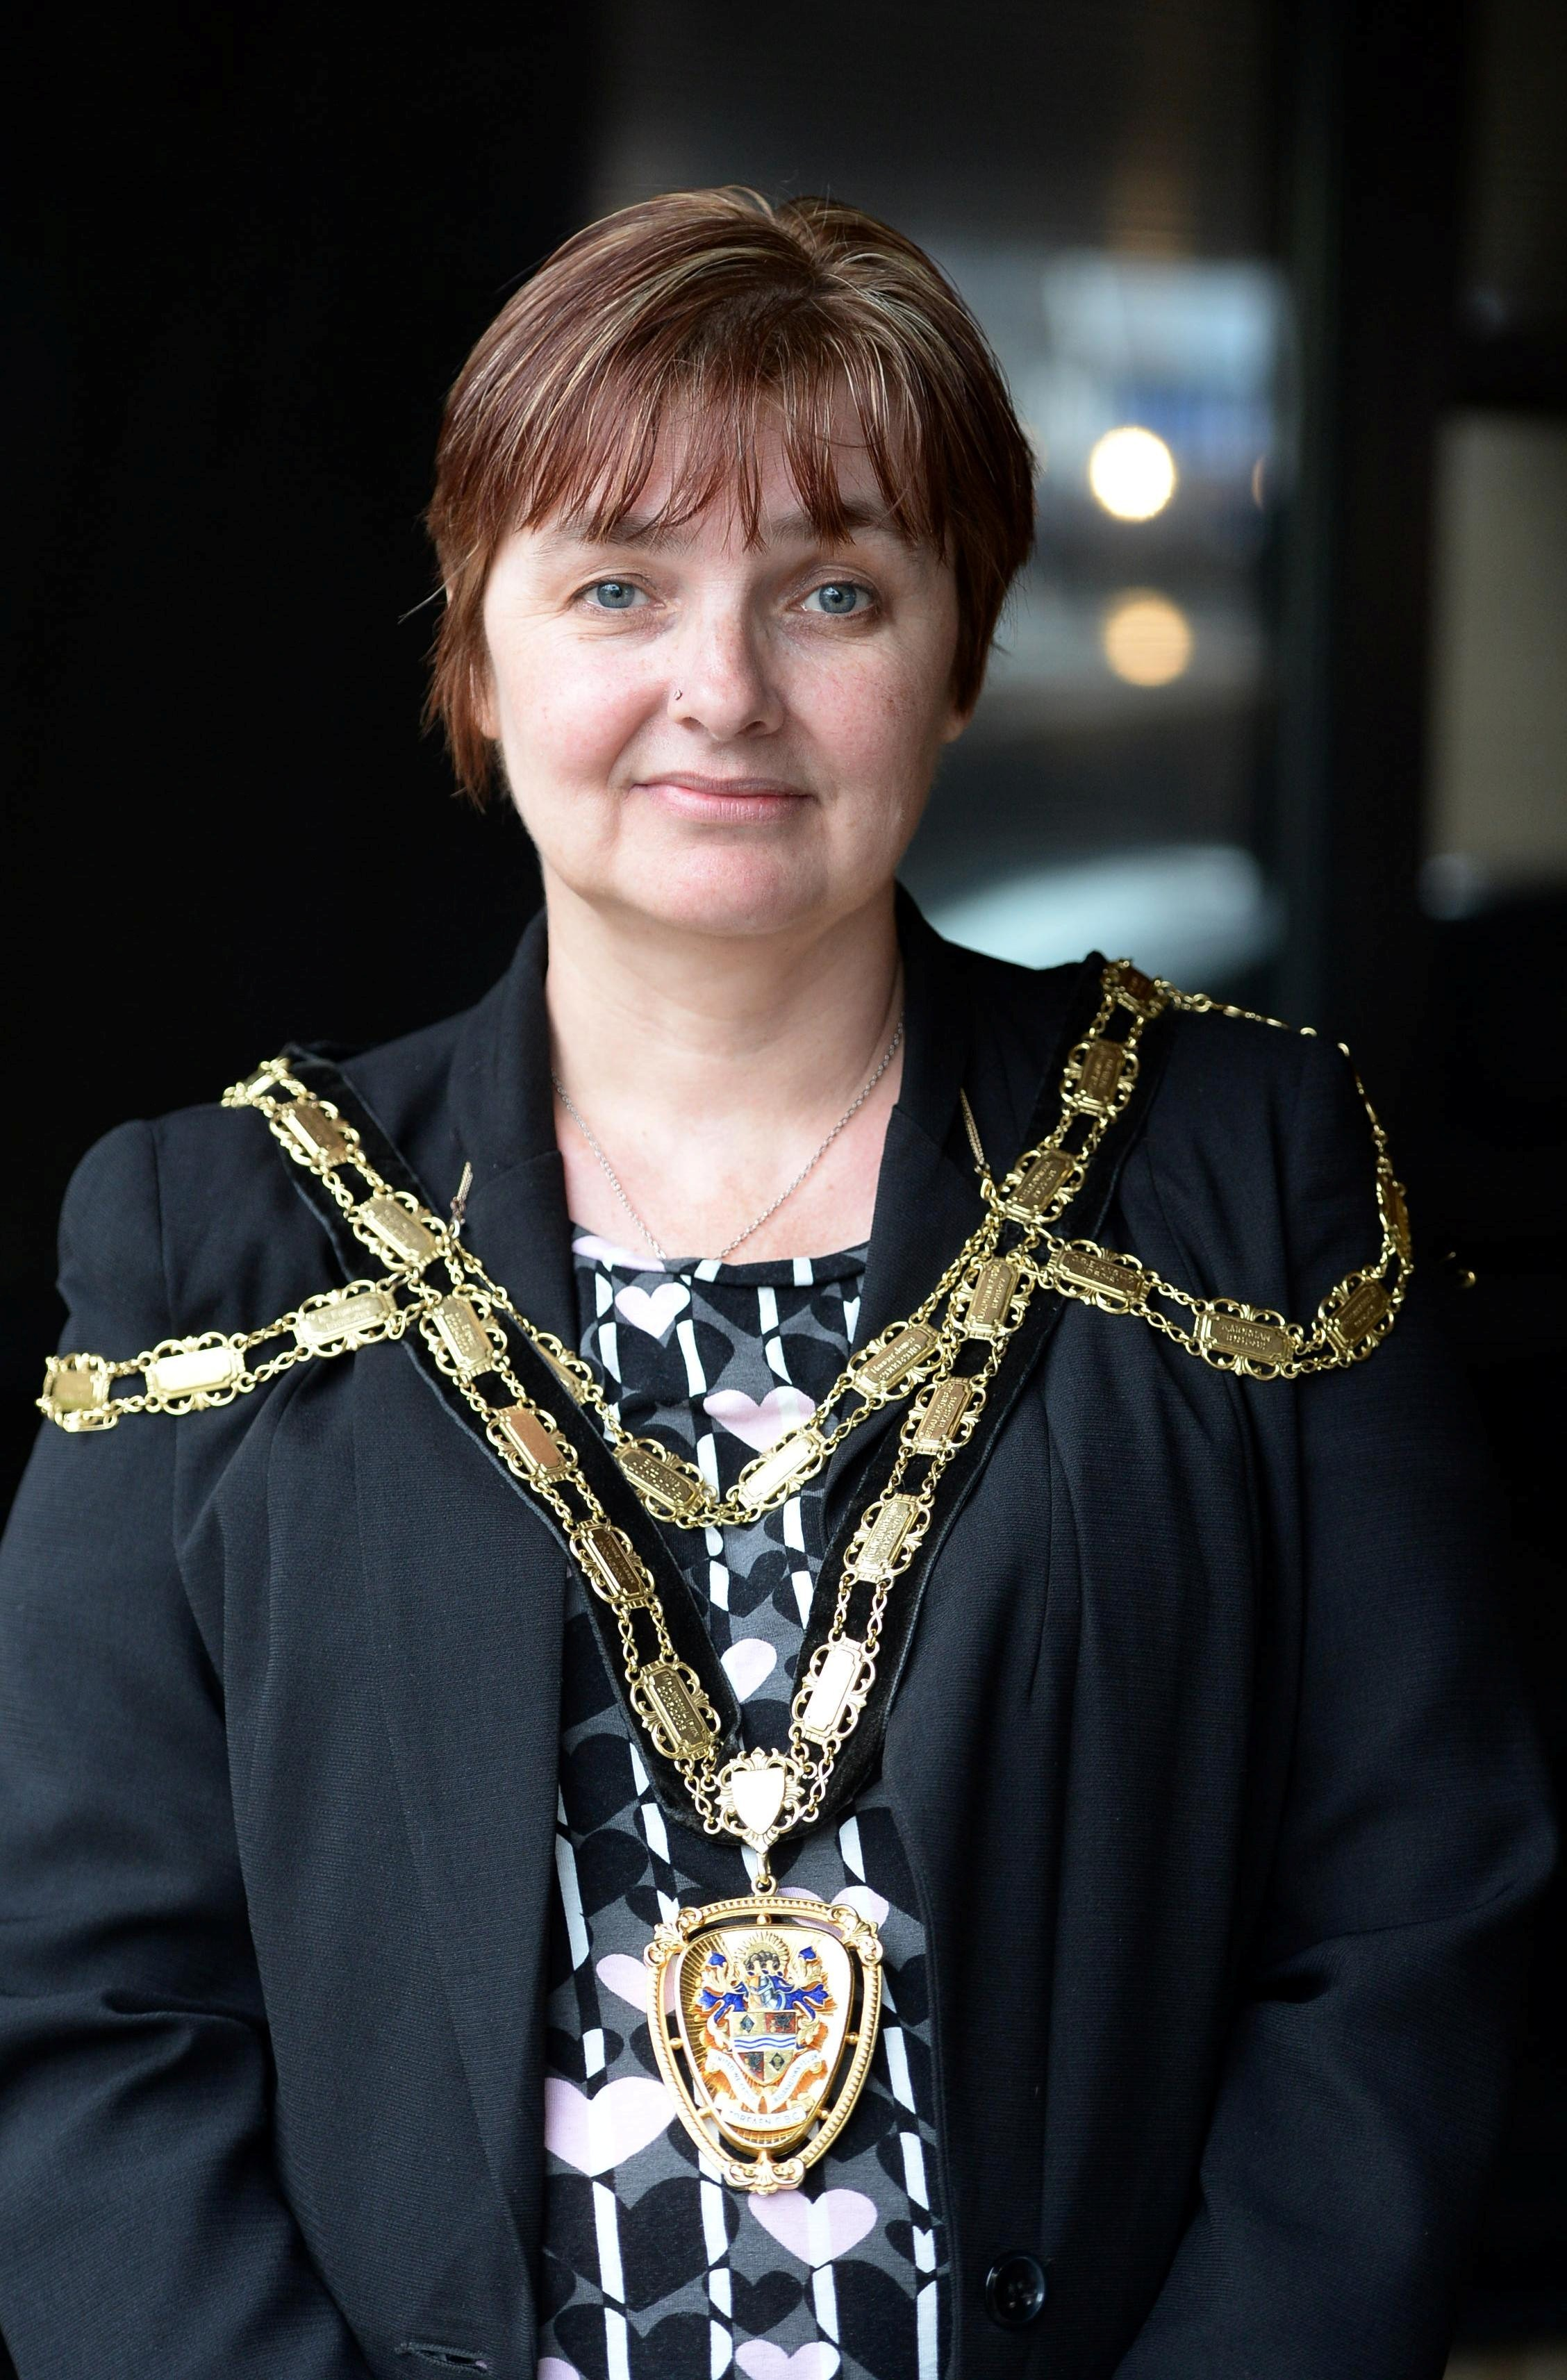 Torfaen Mayor to support hospice that helped her family